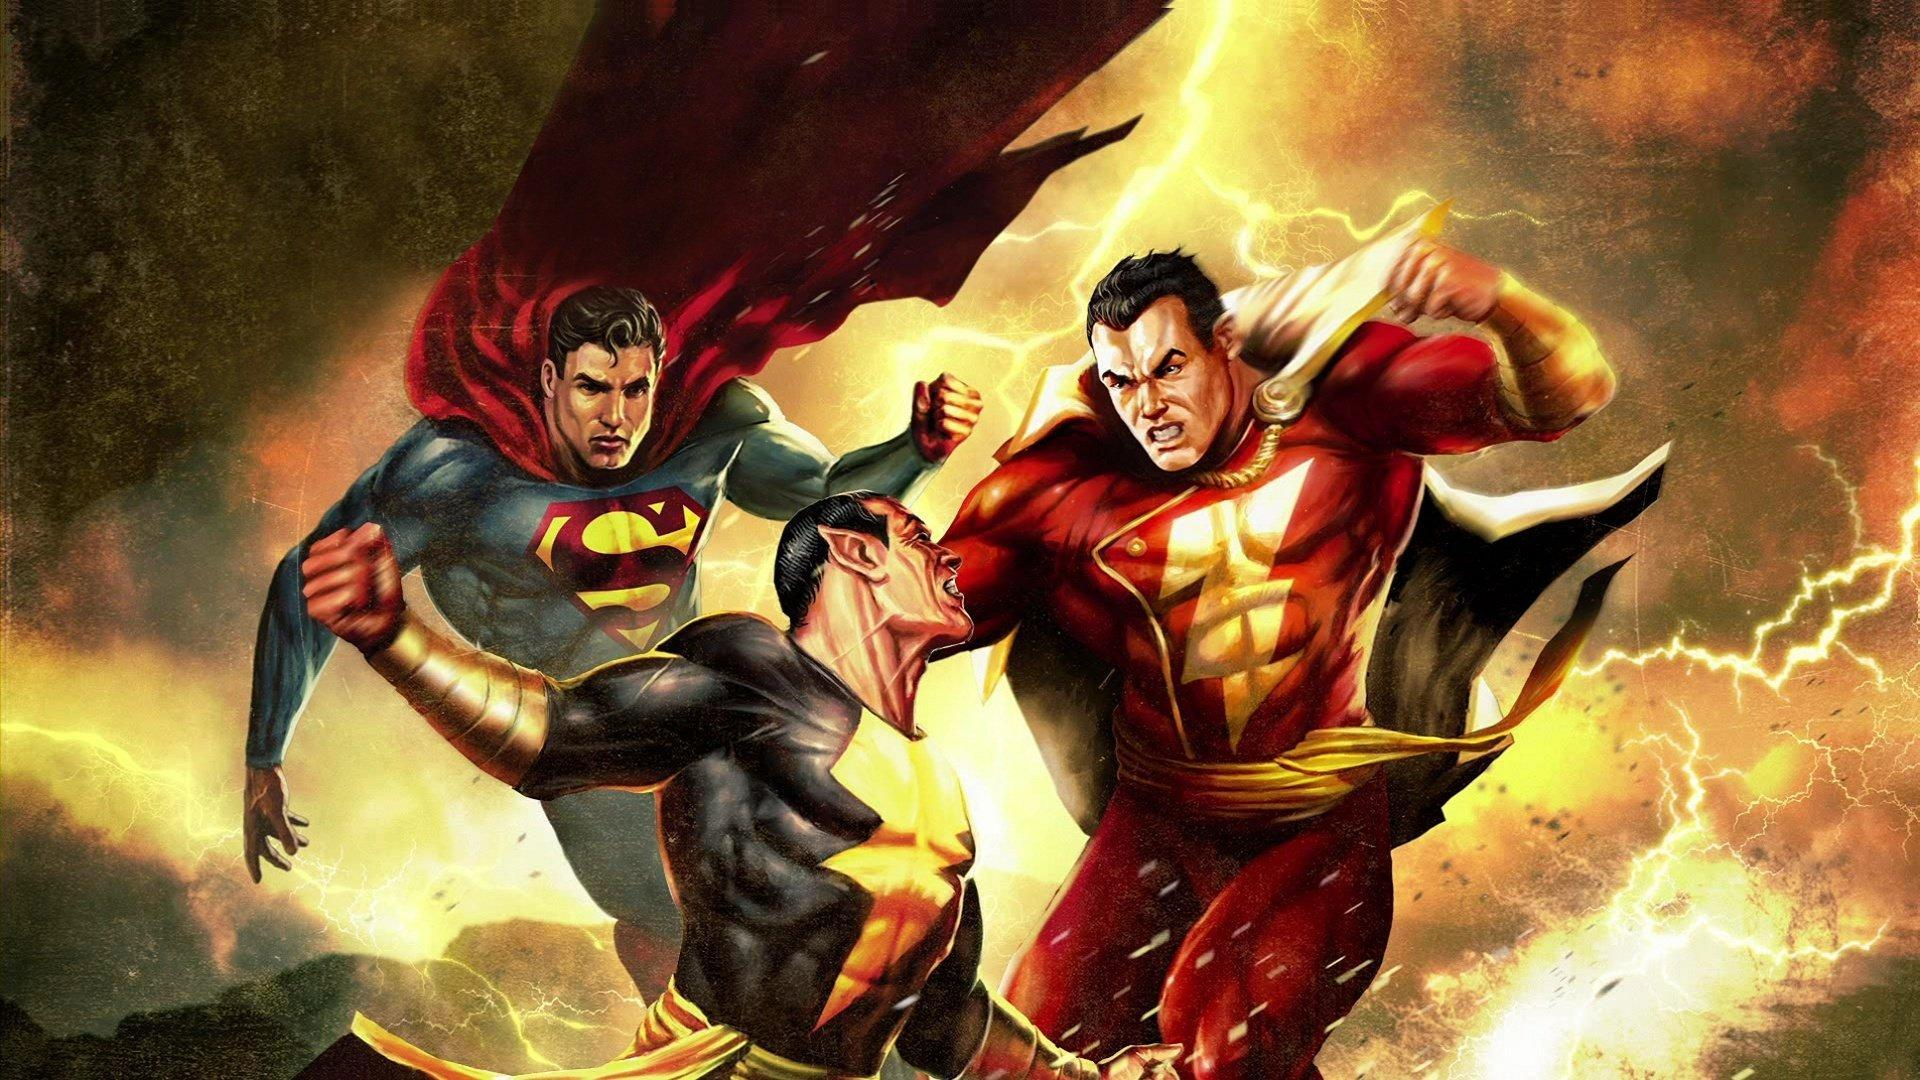 DC Comics sortira son film Shazam! le 5 avril 2019